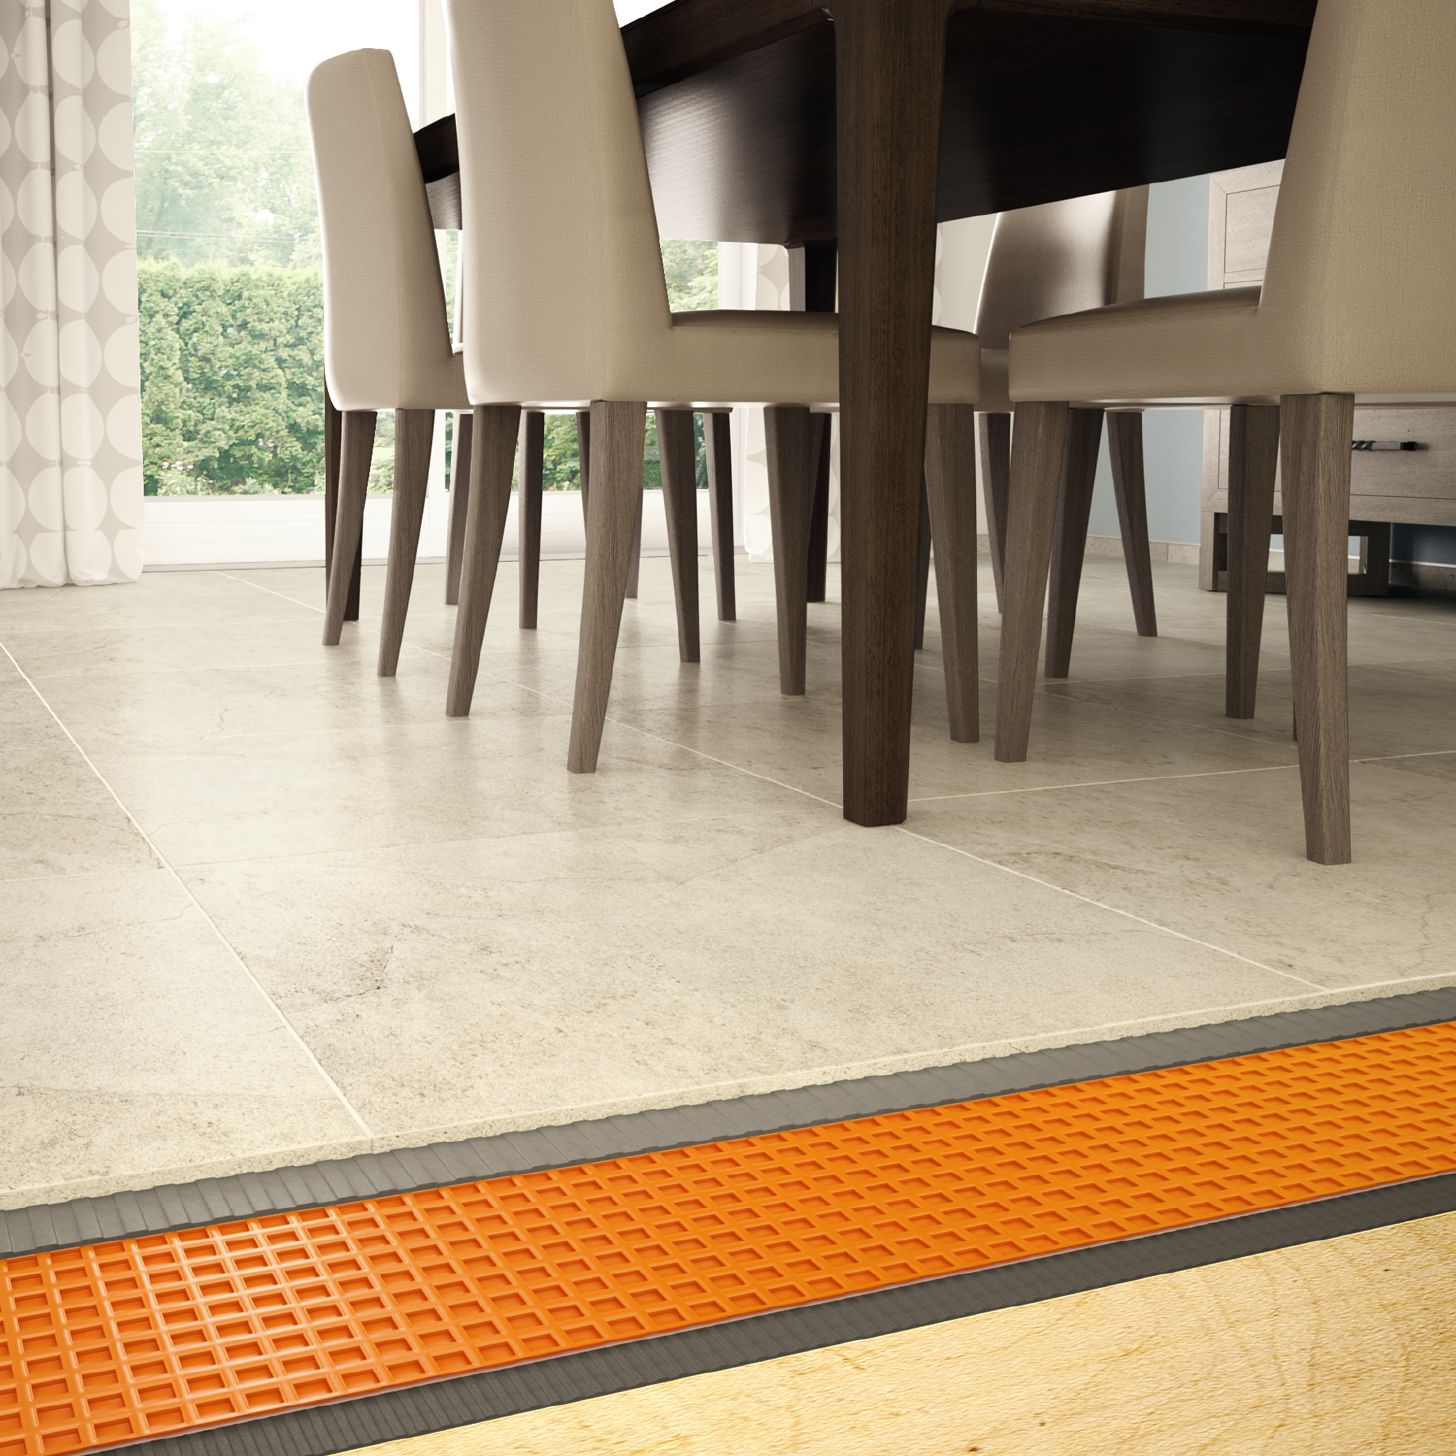 Floors Schlutercom - How to protect ceramic tile floors